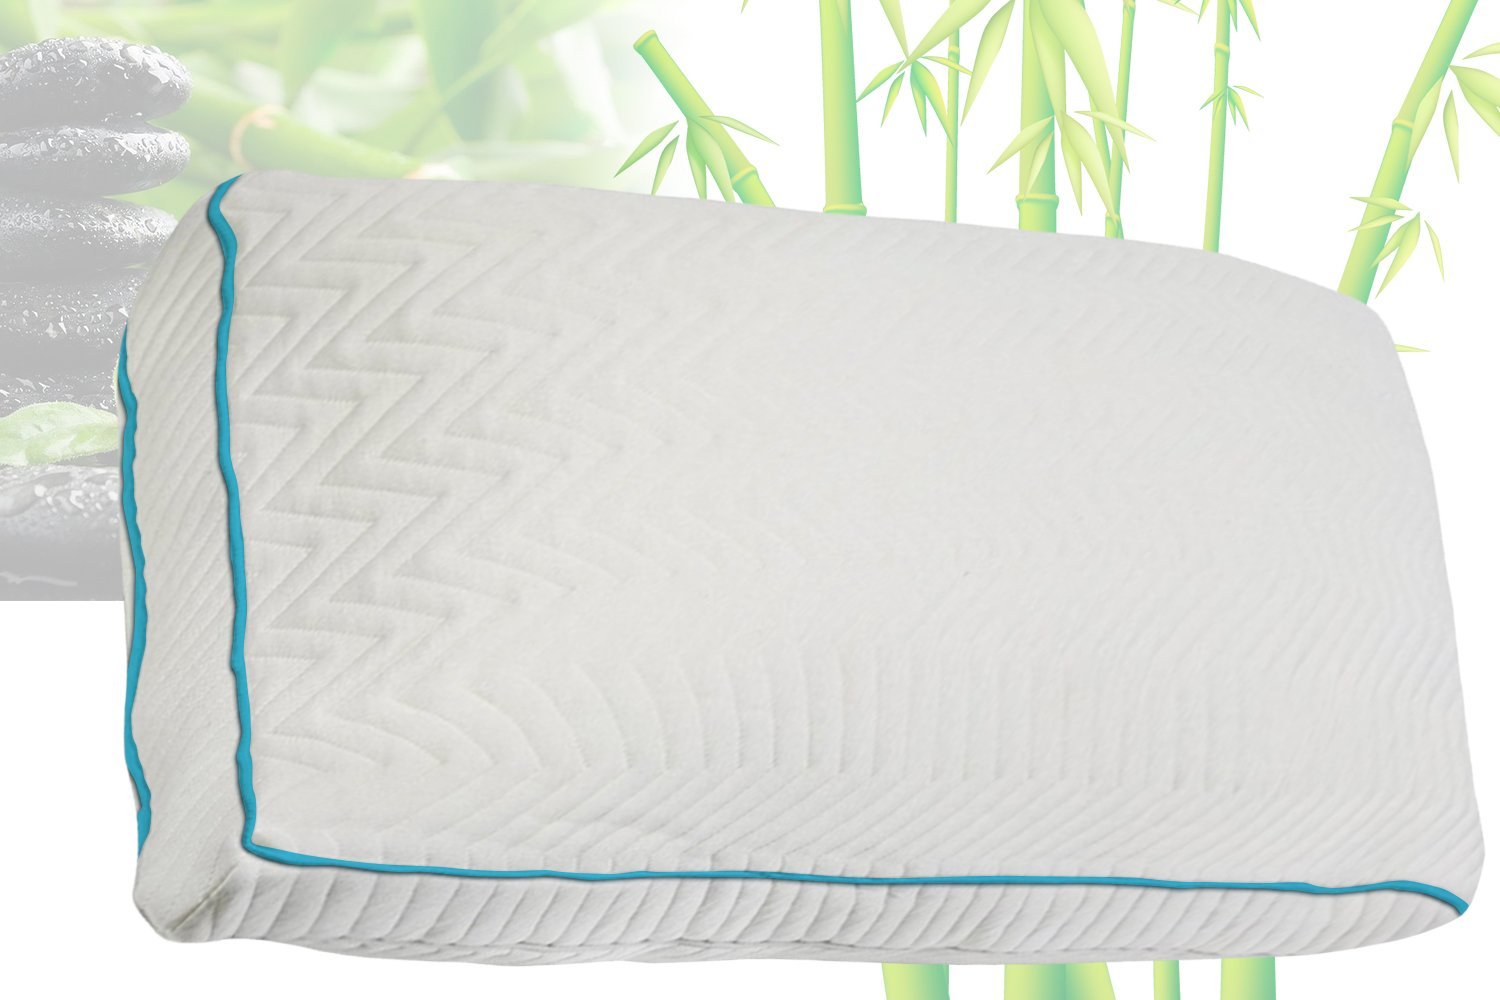 Home Comfort Premium Bamboo Pillow With Shredded Memory Foam and Cool Removable Cover, Queen